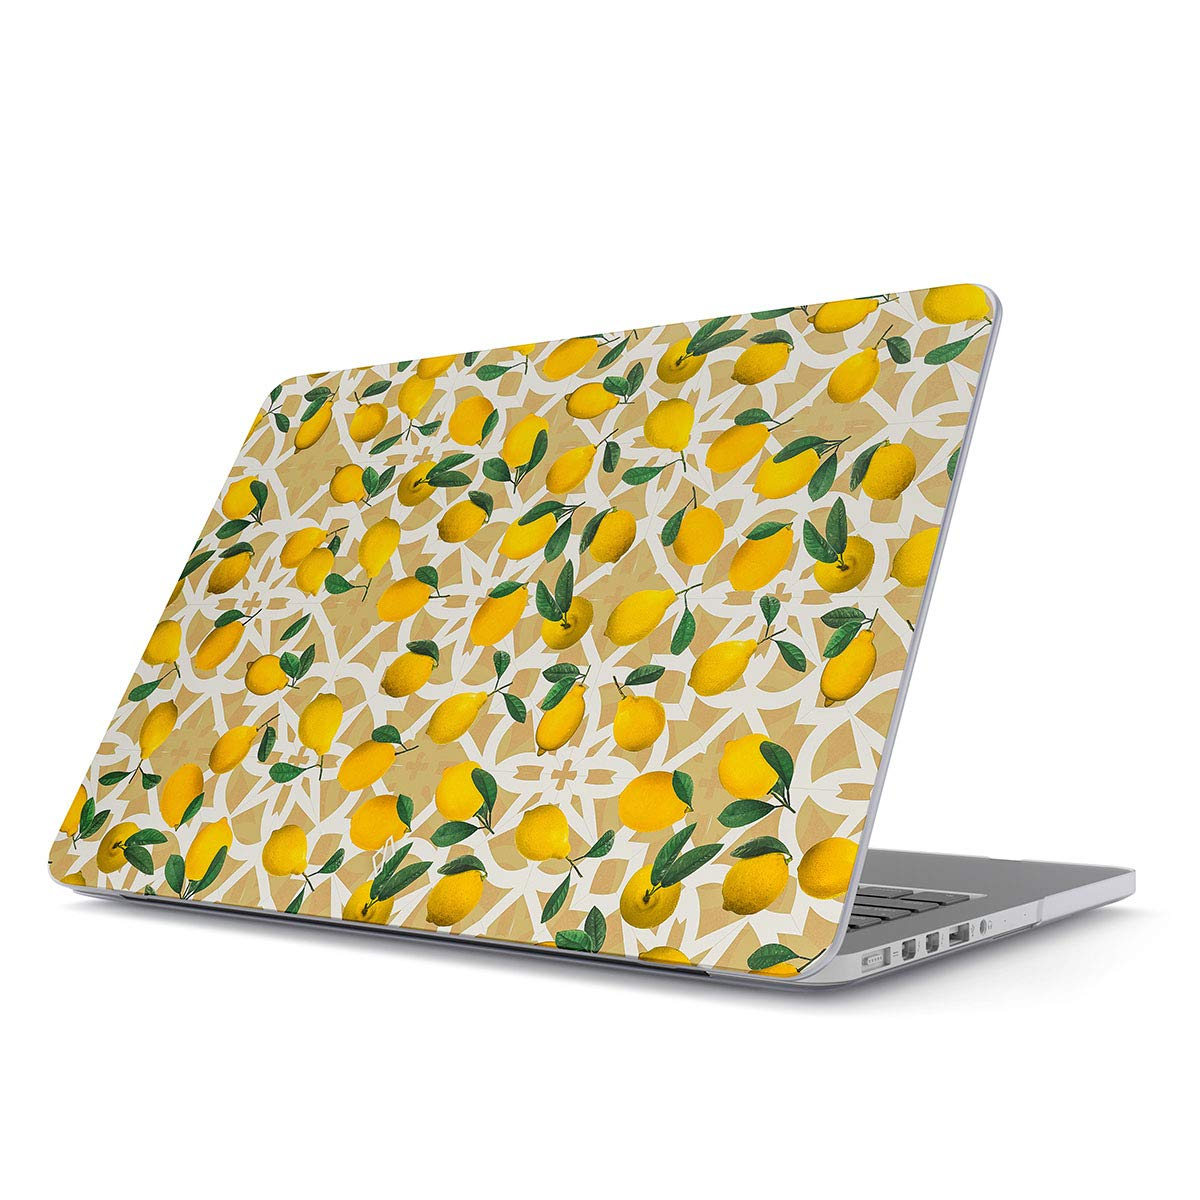 BURGA Hard Case Cover Compatible with MacBook Pro 13 Inch Case Release 2012-2015, Model: A1502 / A1425 Retina Display NO CD-ROM Lemon Pattern Vintage Fruits Citrus Exotic Tropical Yellow Summer